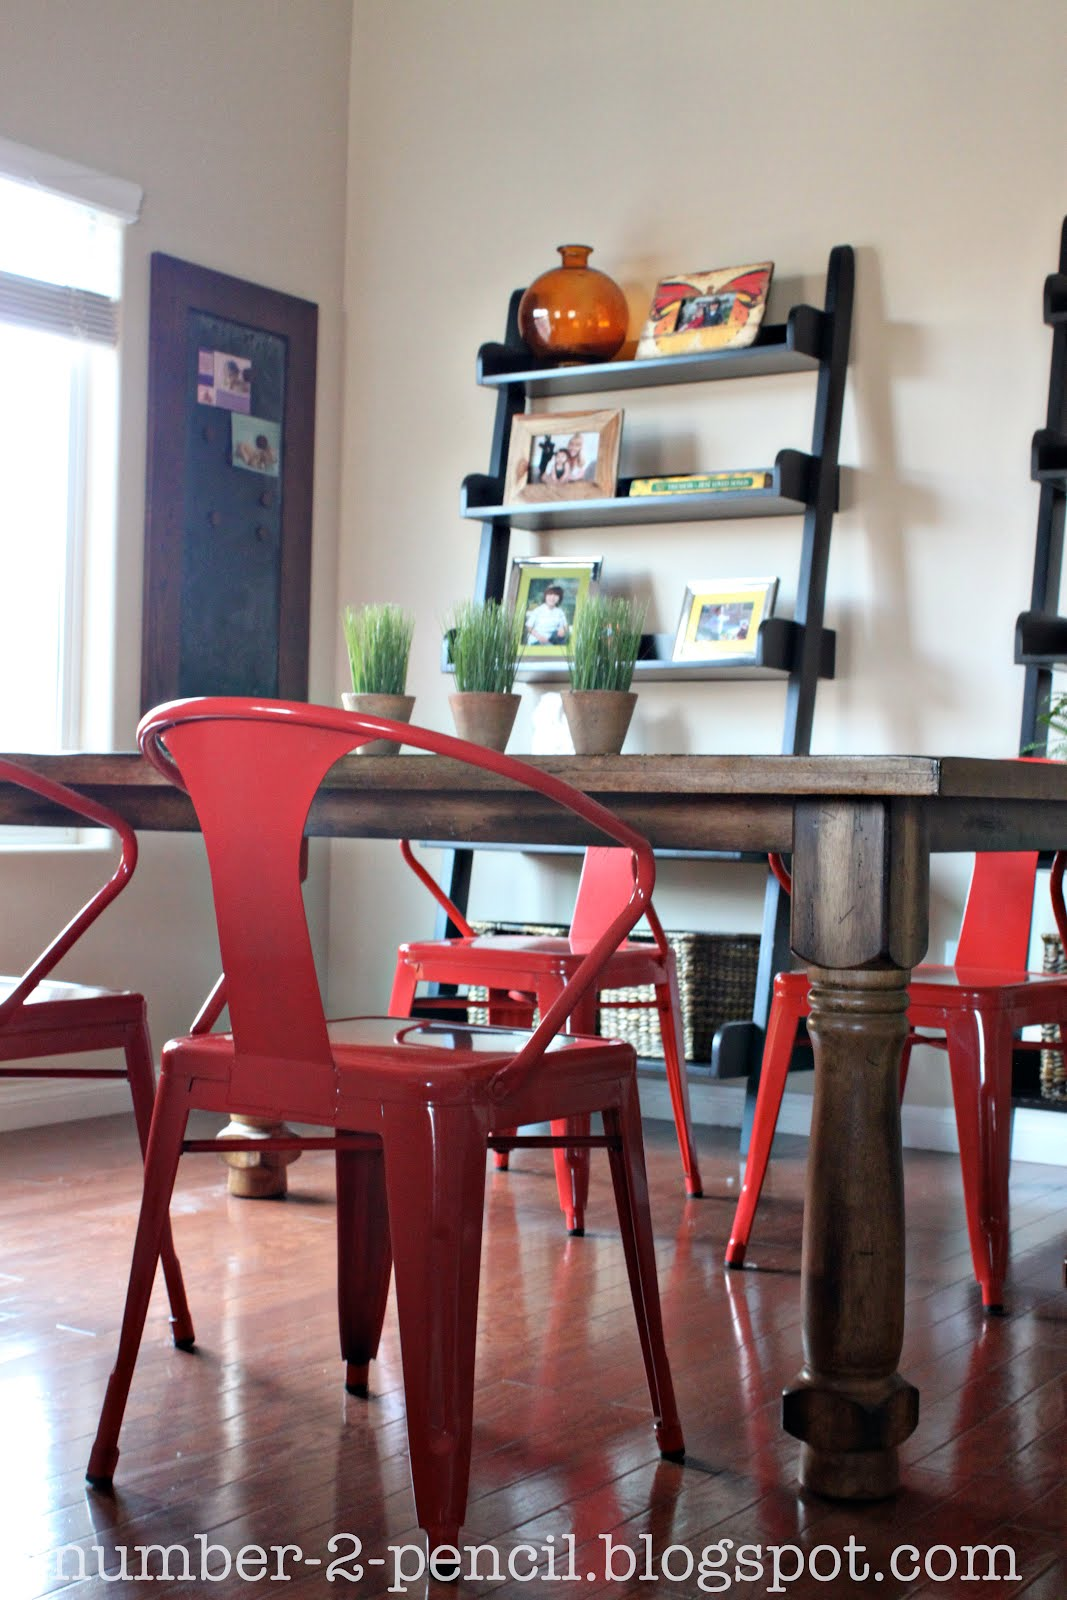 new bright and bold dining chairs red kitchen chairs Really you can t beat the price either We were able to sell our old chairs on Craigslist and make our money back Win win